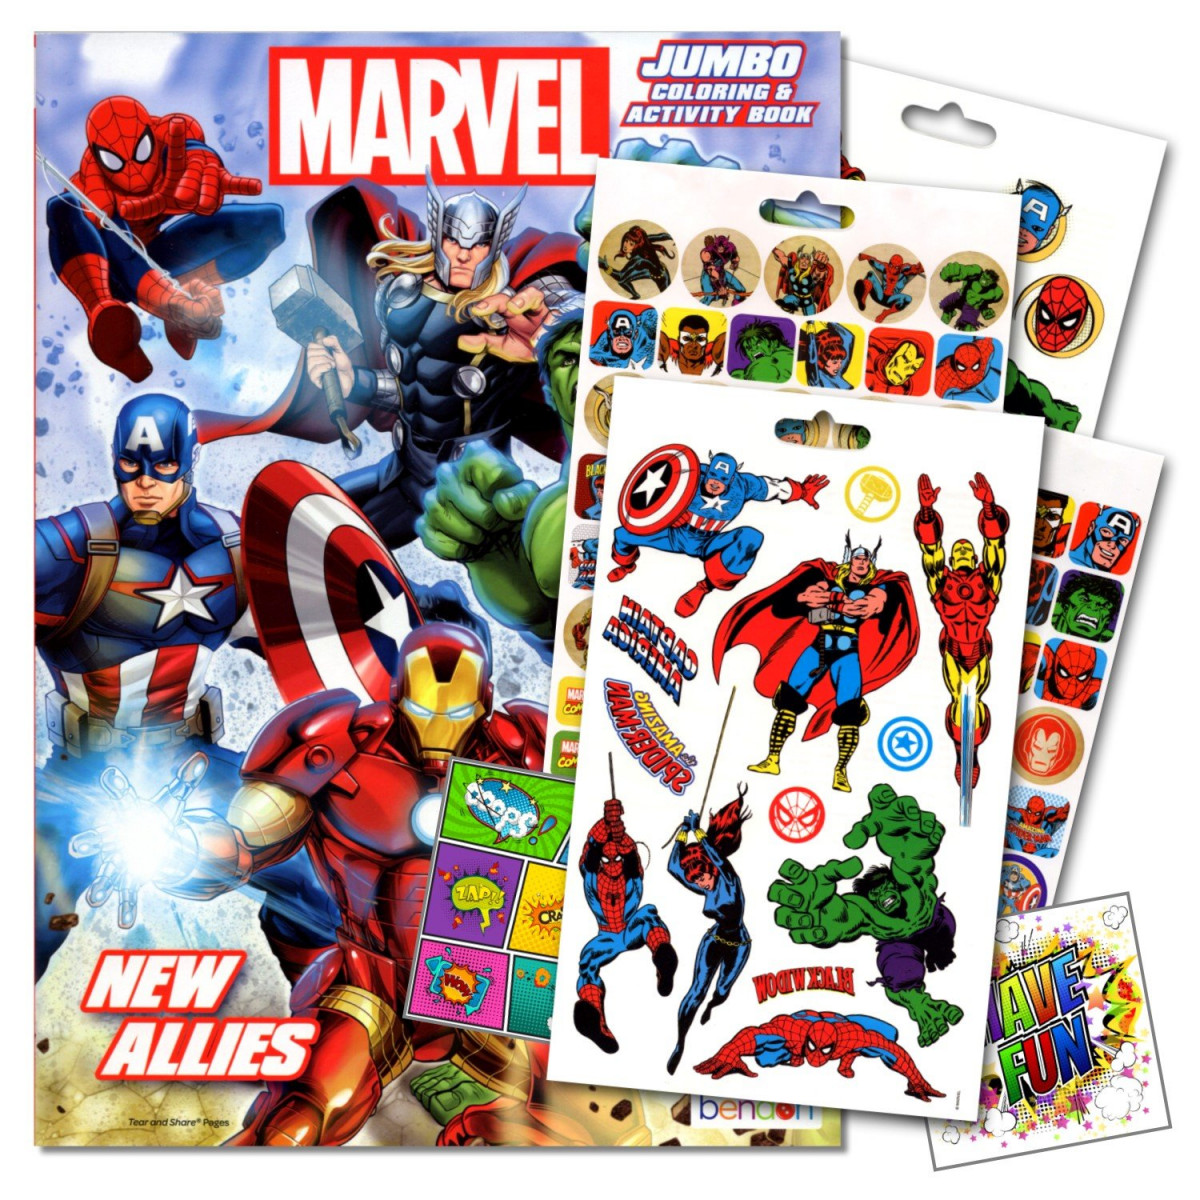 Marvel Comics Heroes Coloring Book With Stickers and Tattoos Set Bundled  with 2 Specialty Separately Licensed GWW Reward Stickers